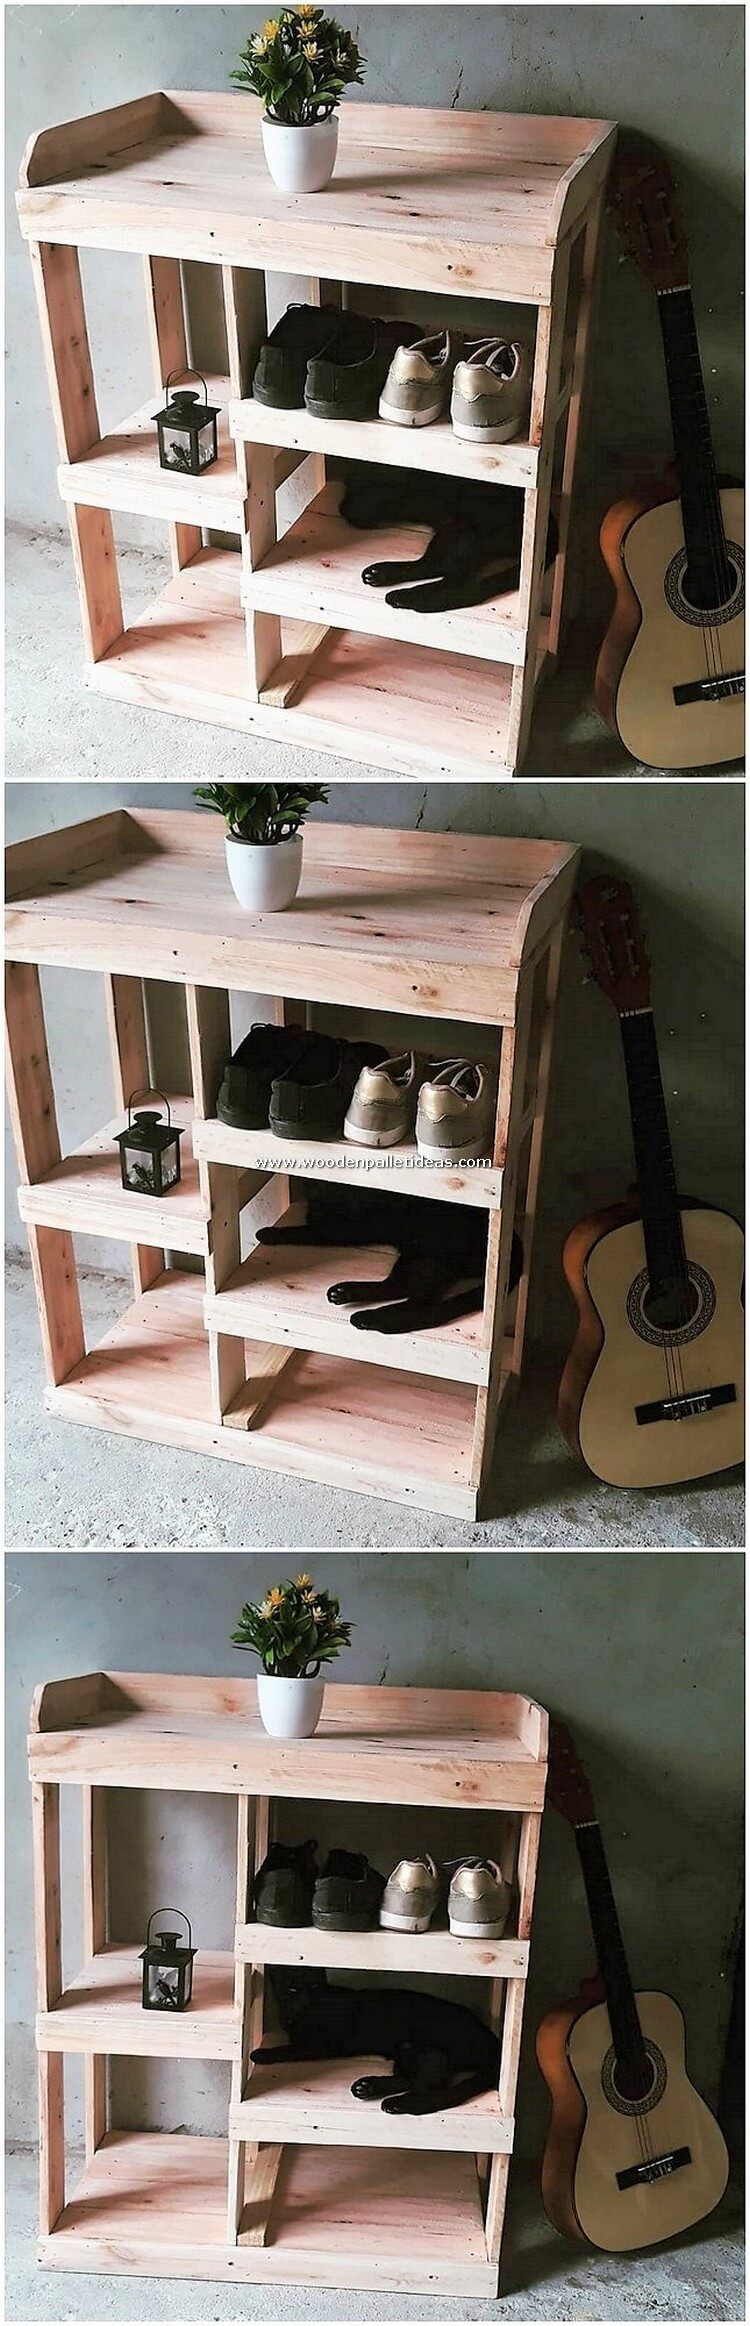 Pallet-Table-with-Shoe-Rack